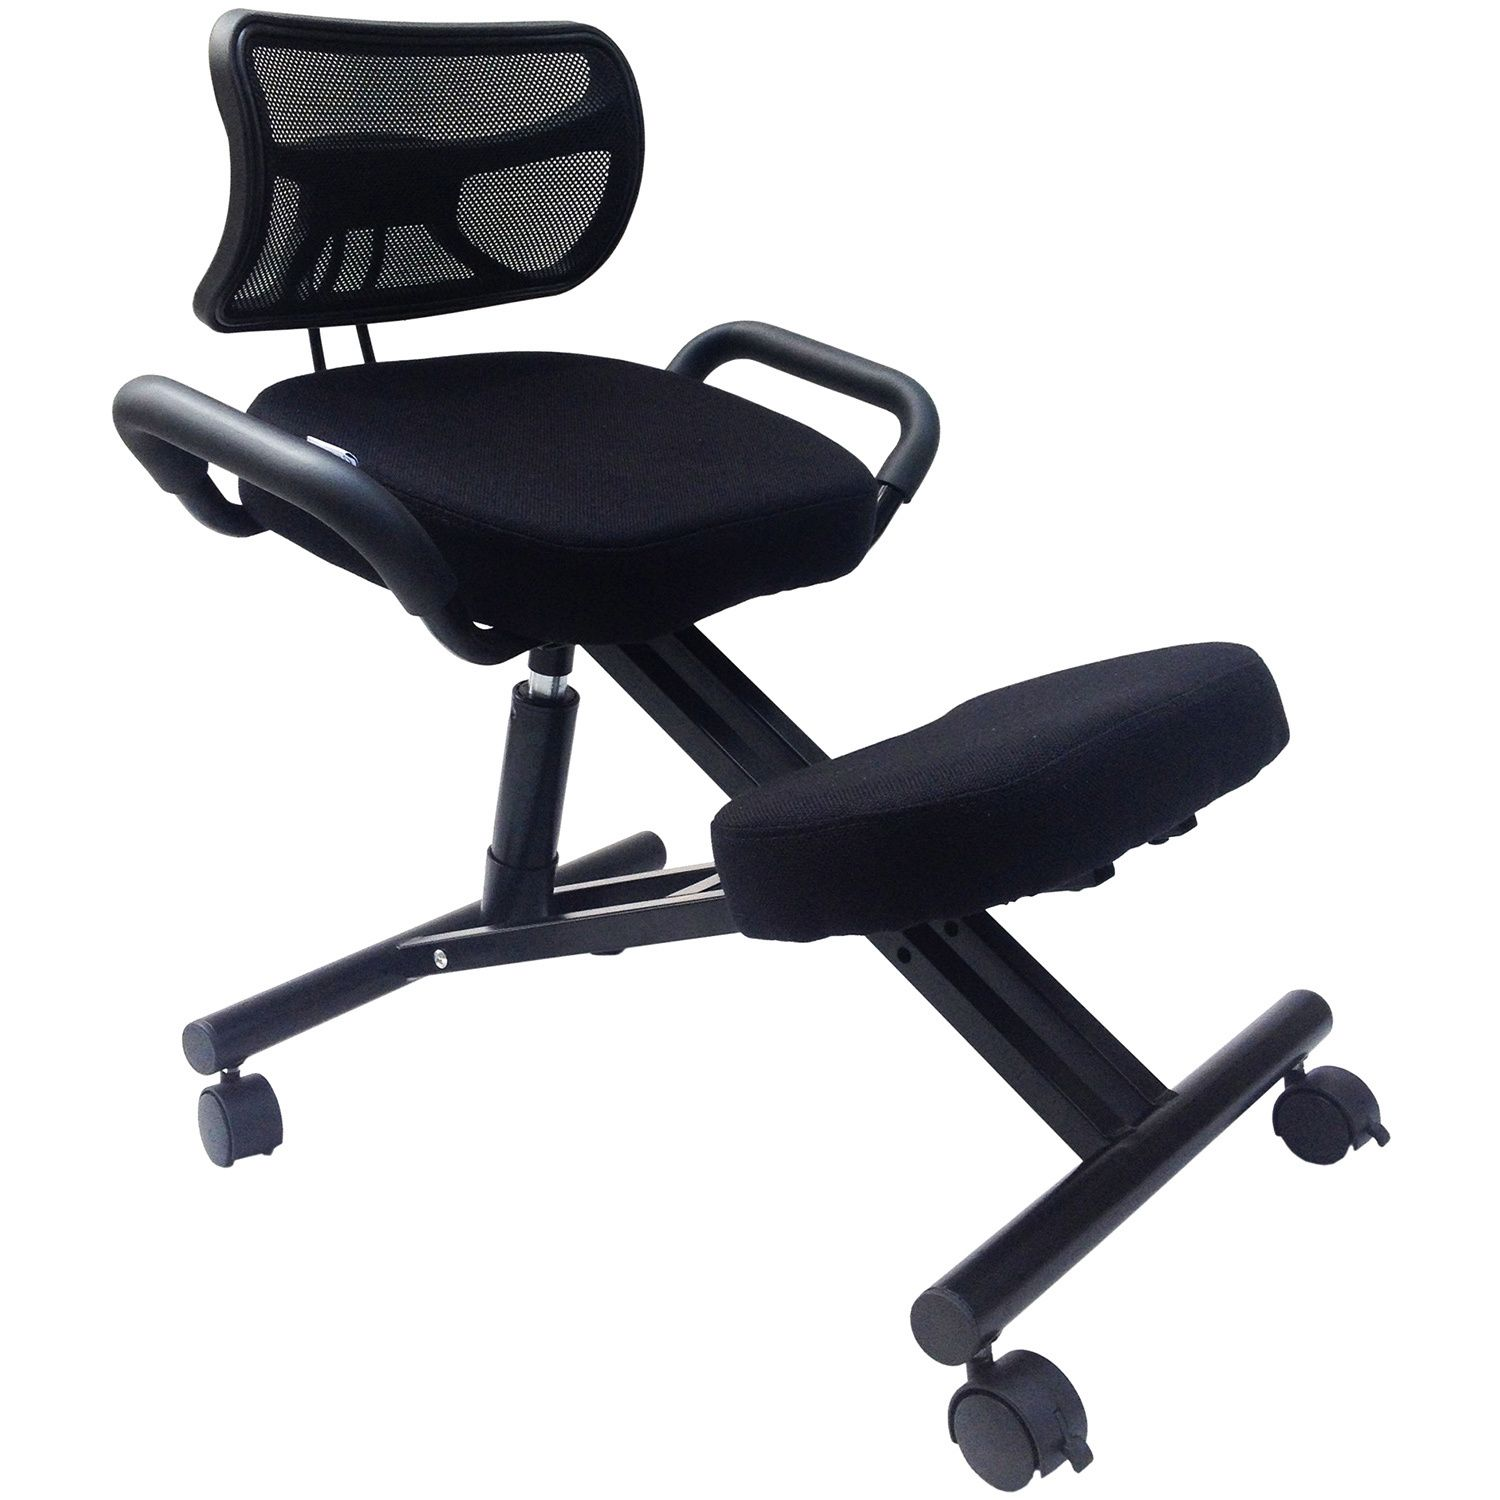 Sierra Comfort Sc 300 Ergonomic Kneeling Chair With Back